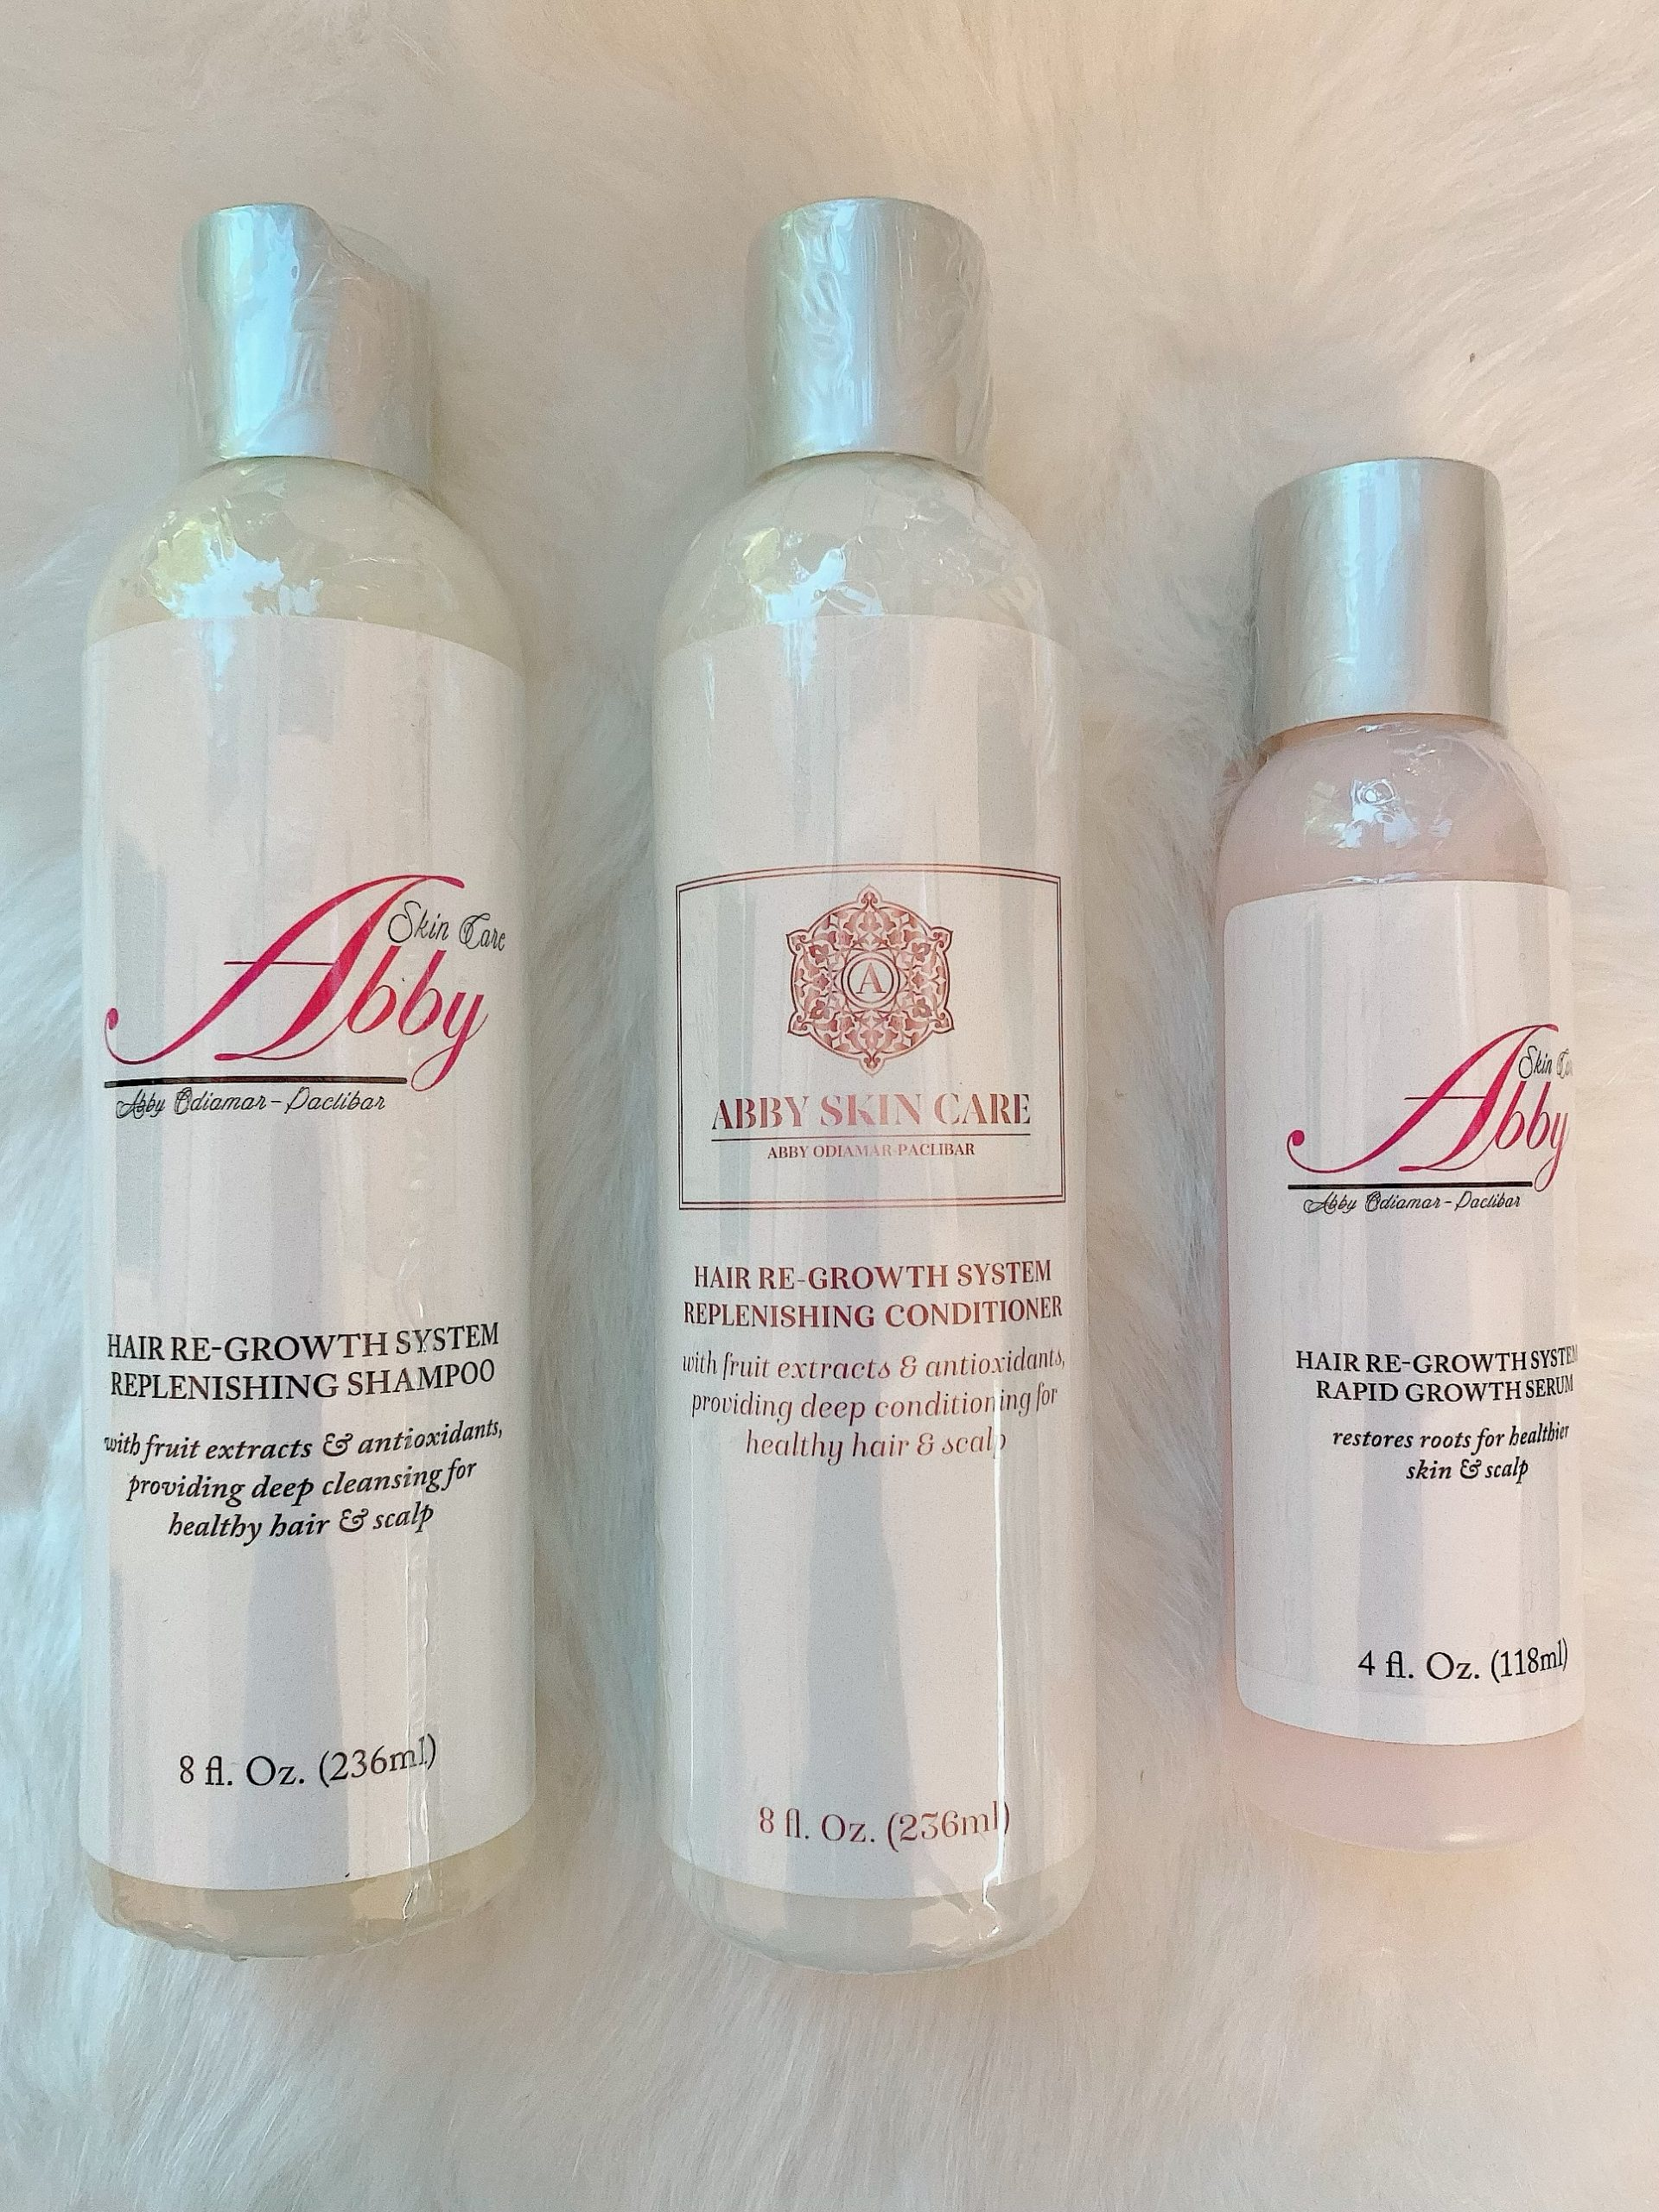 Hair Re-Growth System